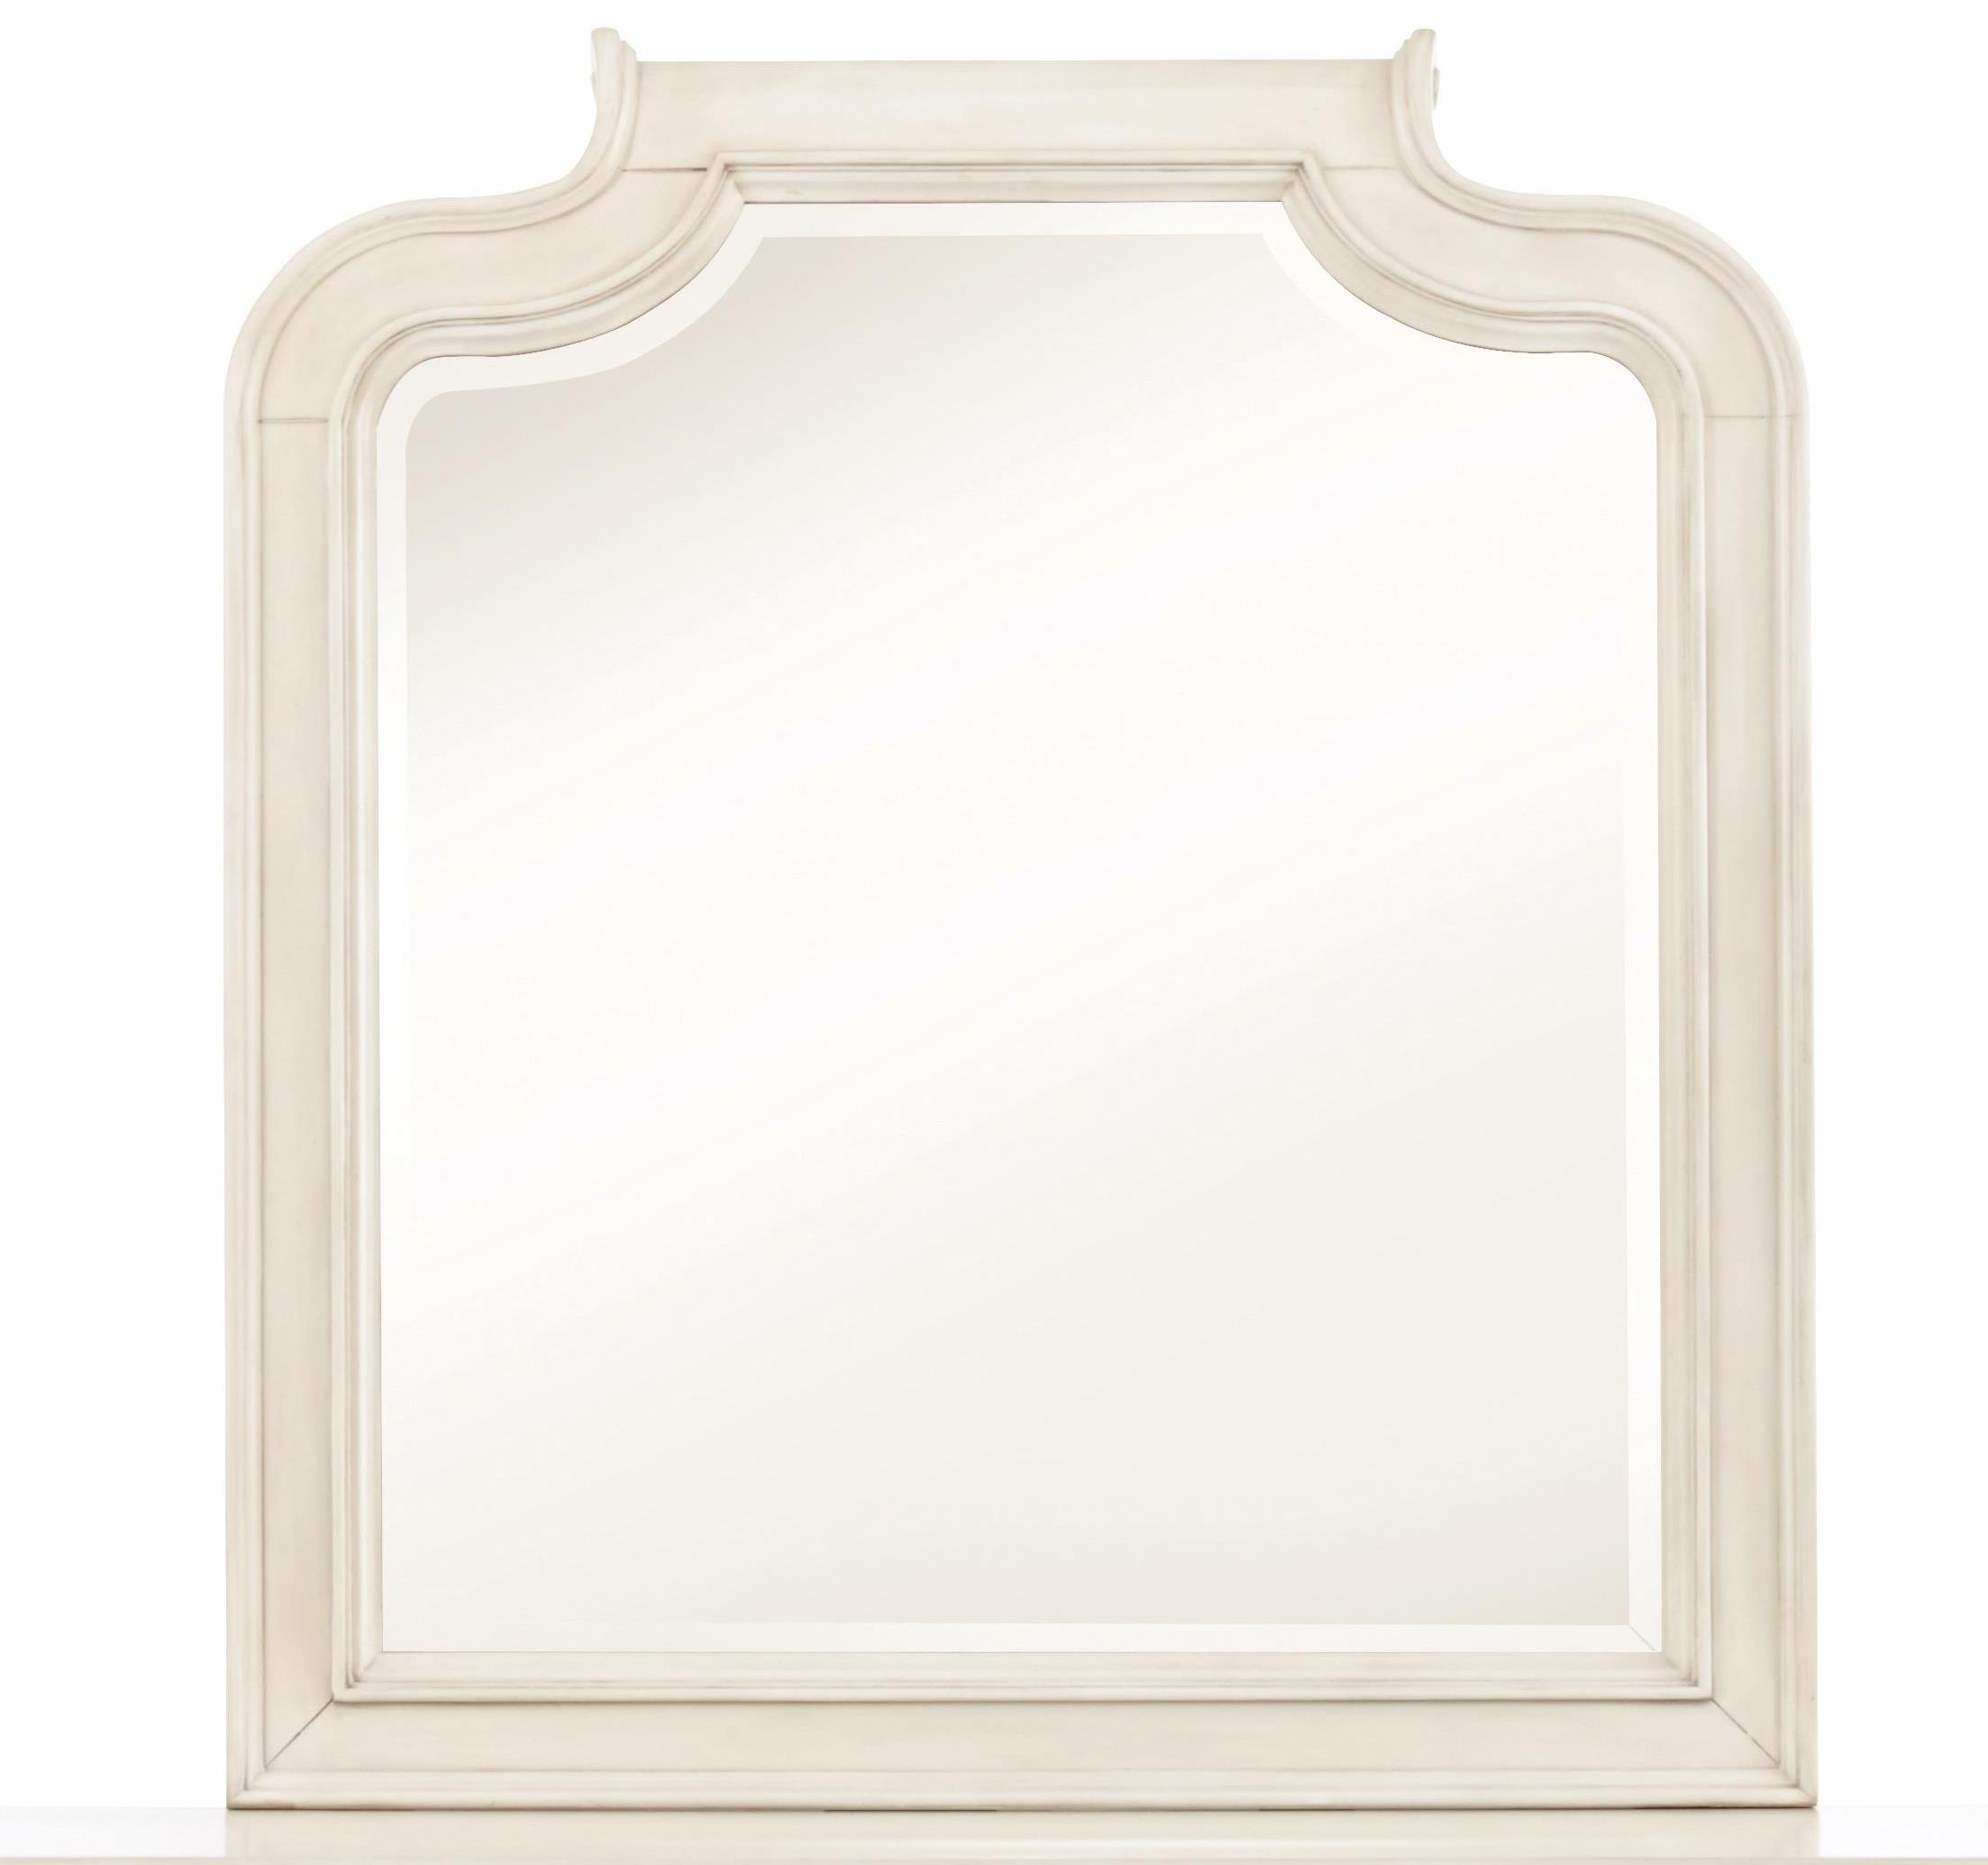 Kidz Gear Everly Landscape Mirror - Item Number: 8890-430